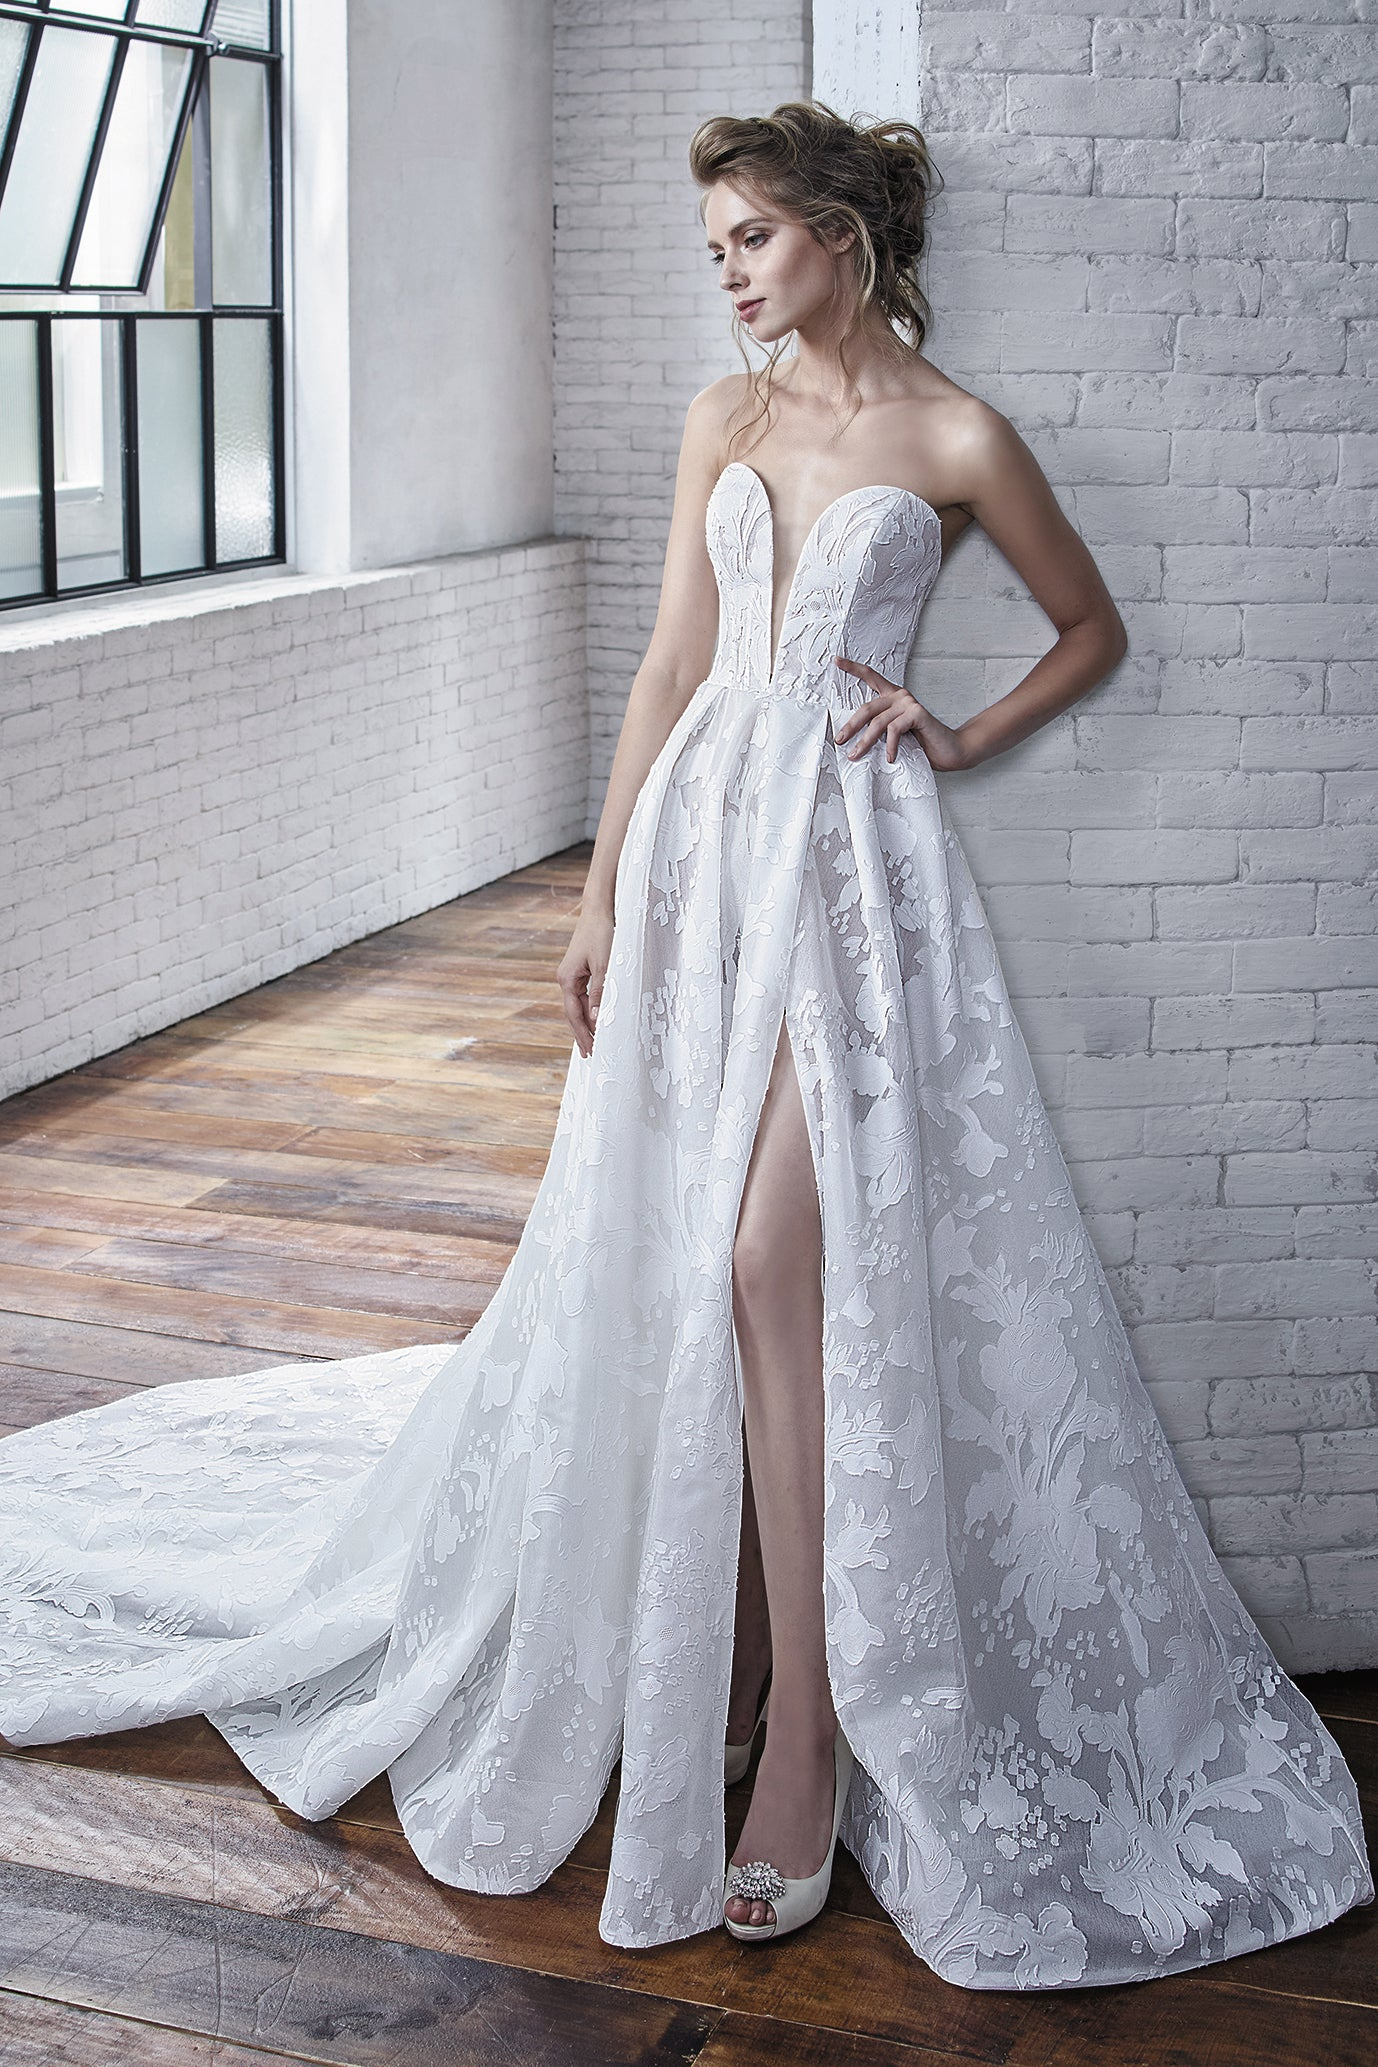 Carina - New, Gown, Badgley Mischka Bride - Eternal Bridal